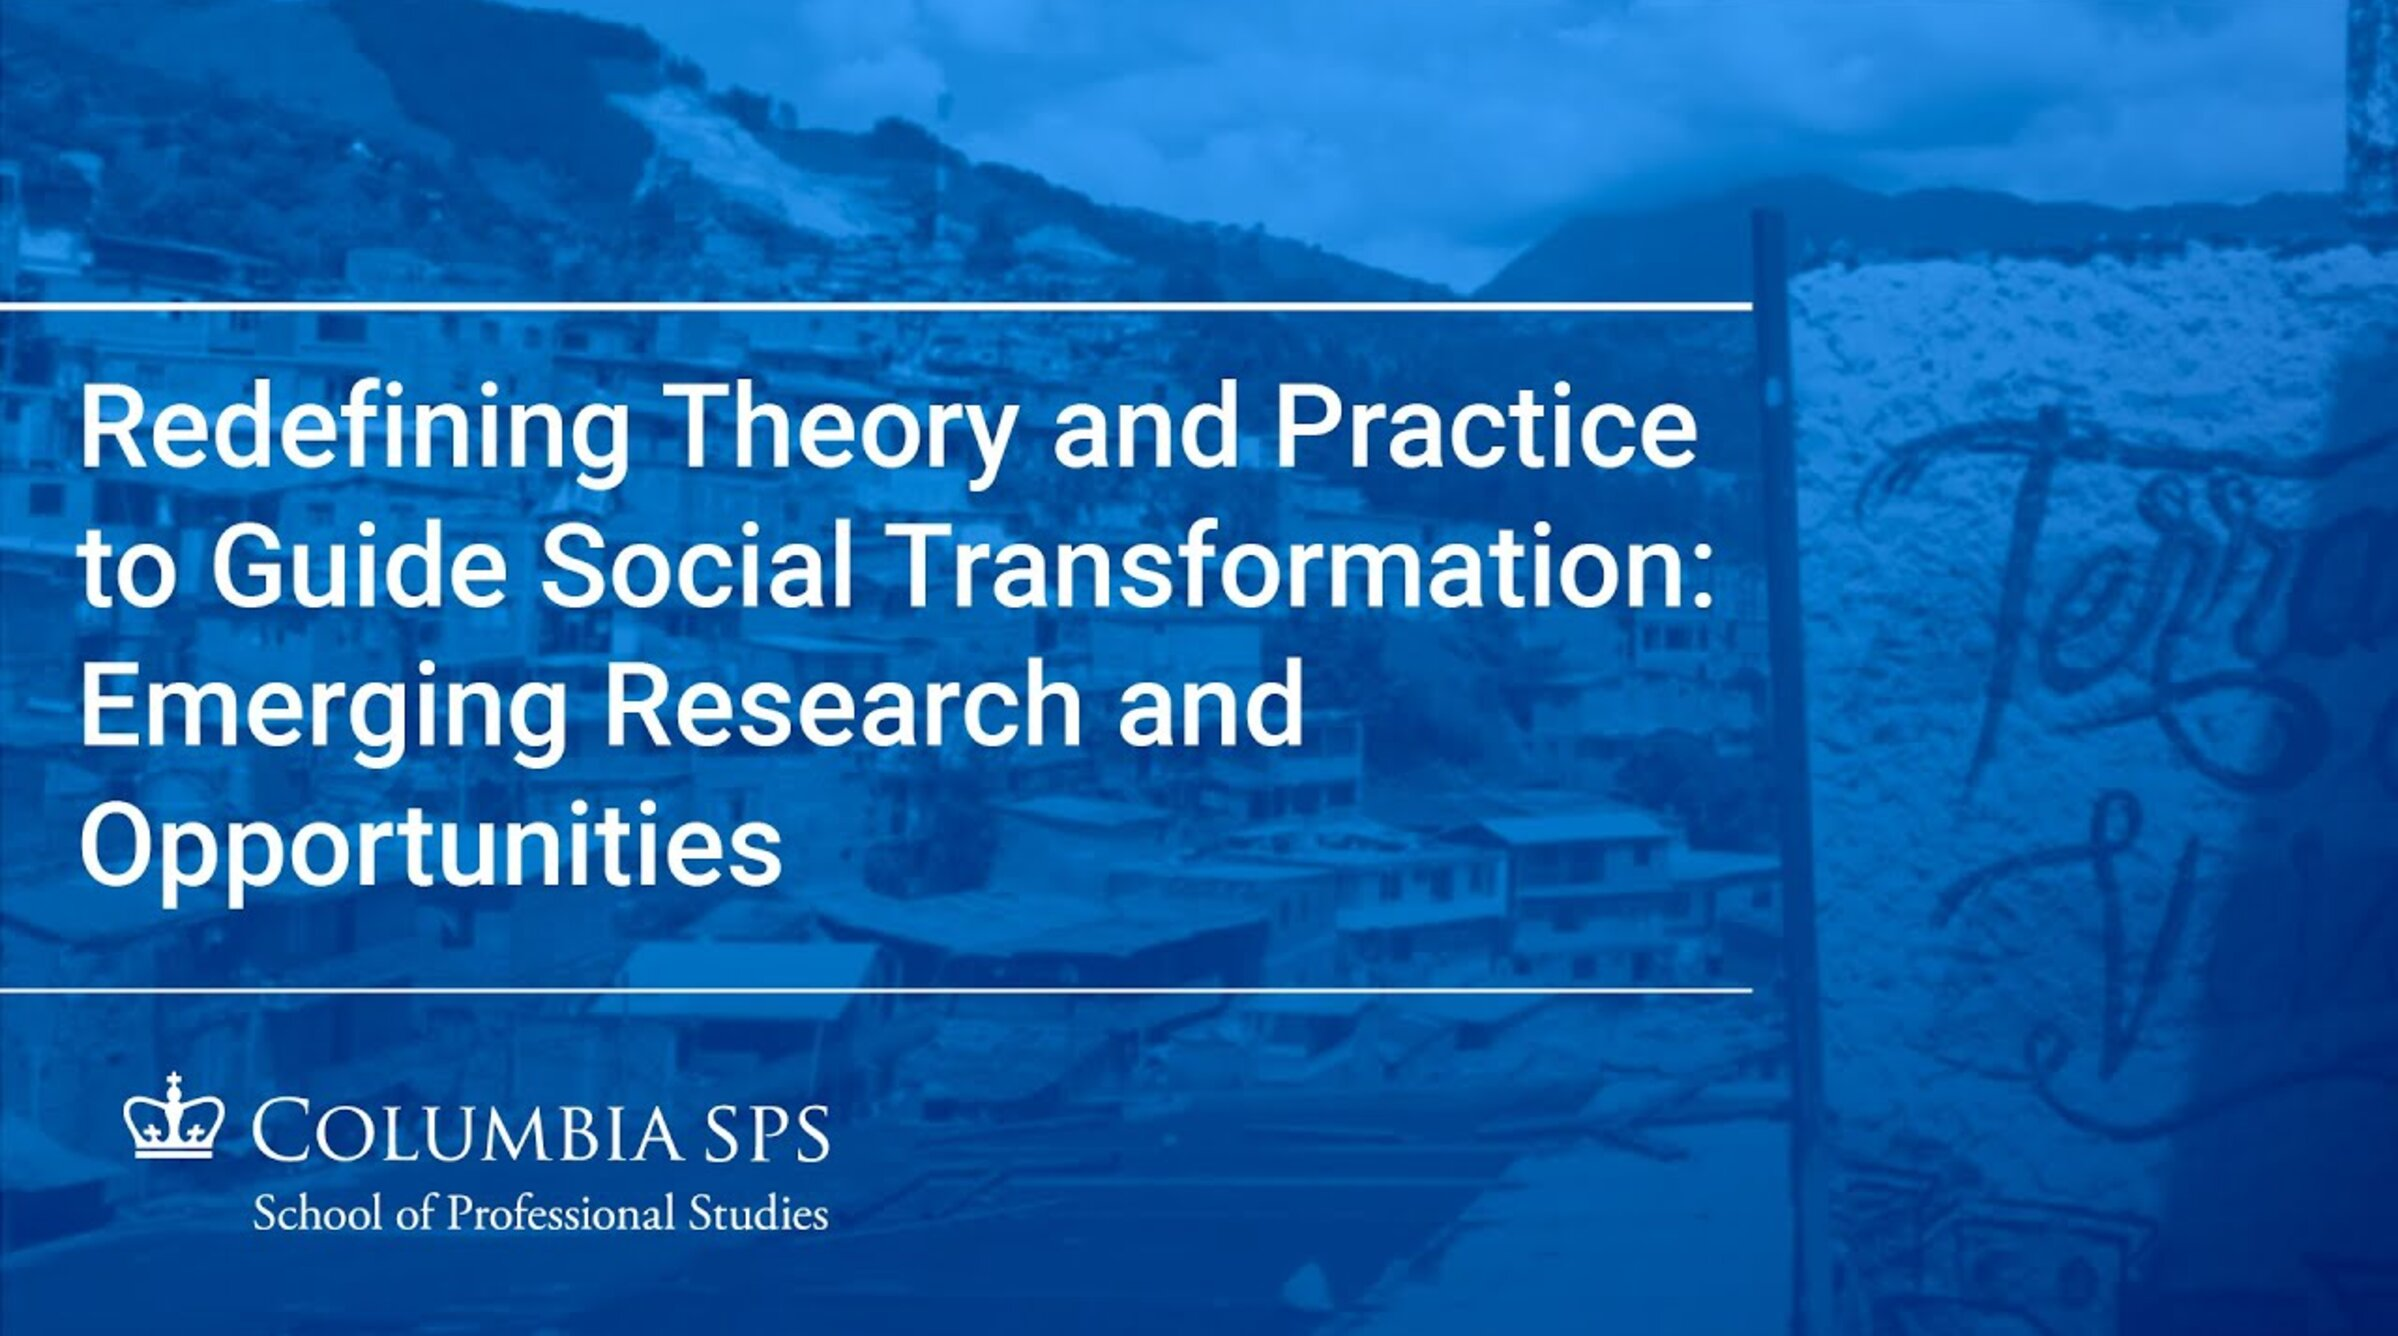 Redefining Theory and Practice to Guide Social Transformation